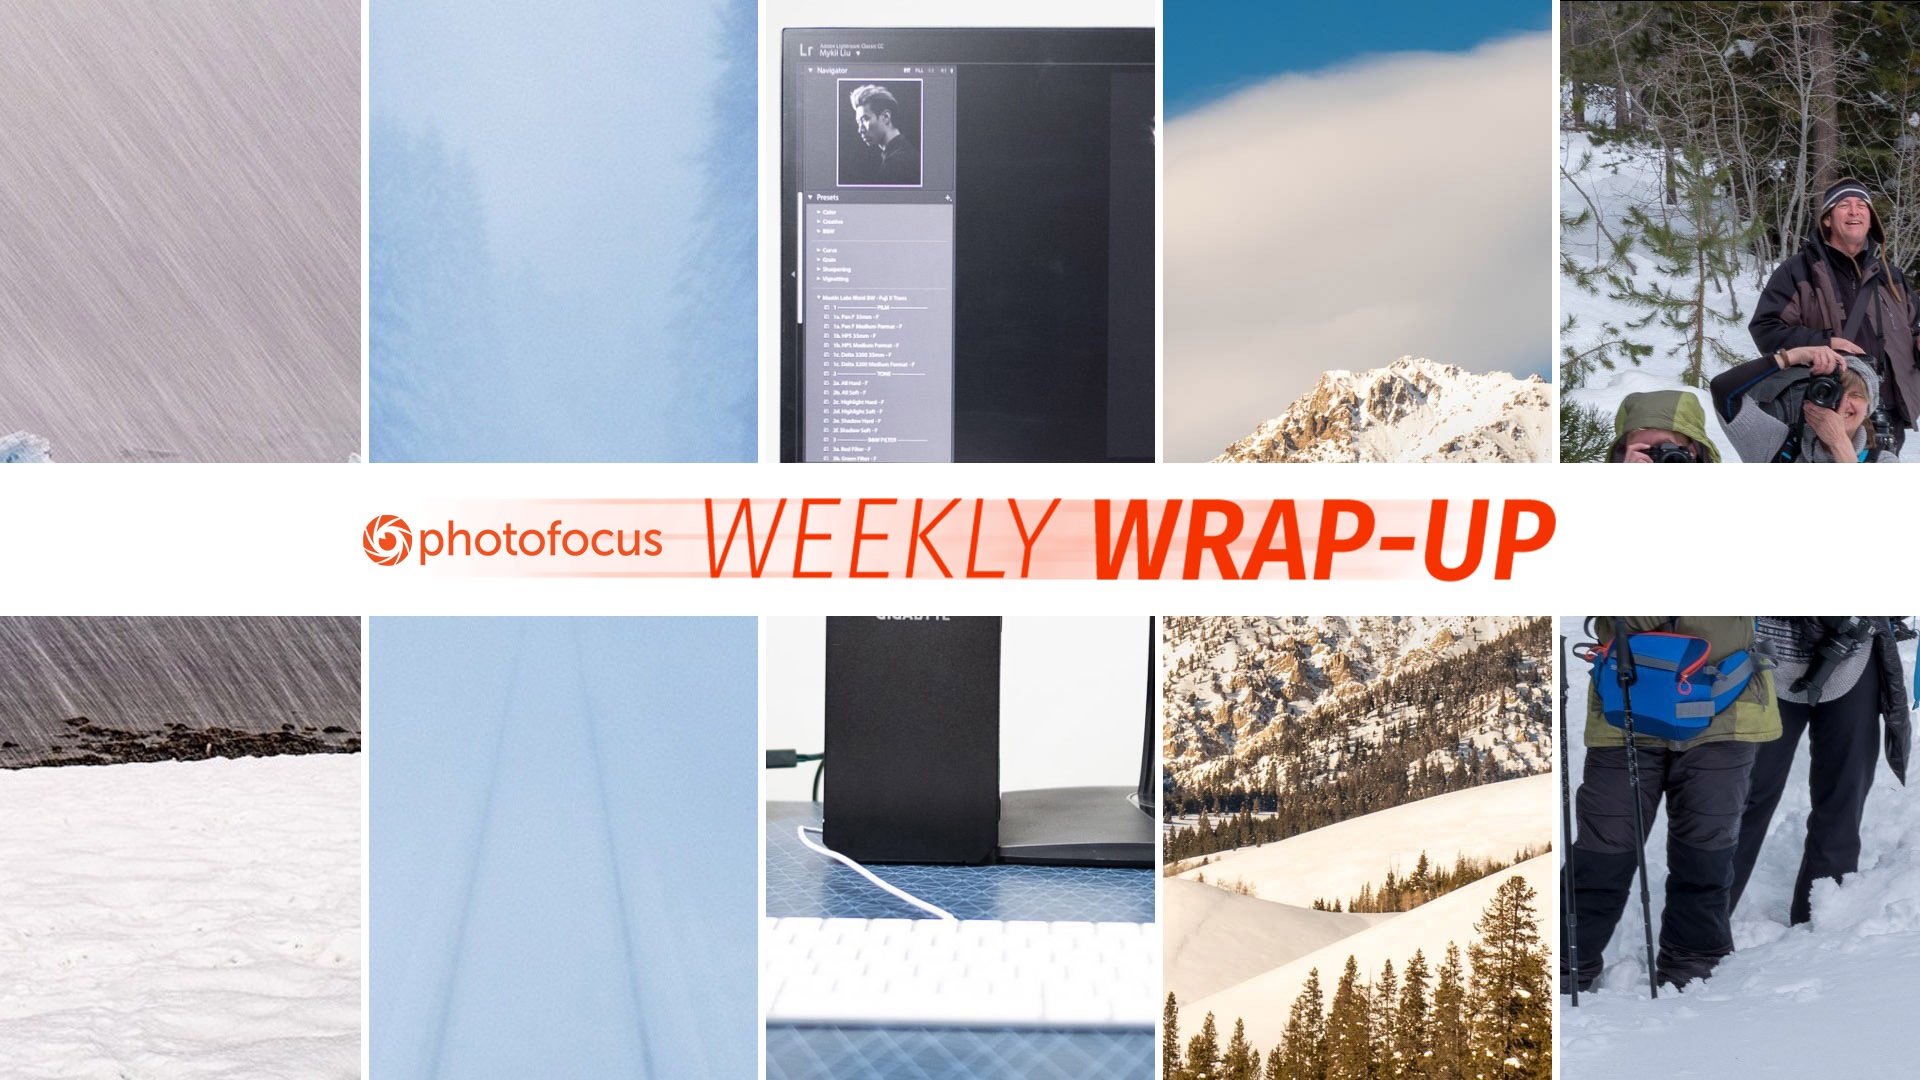 Photofocus weekly wrap-up February 24-March 2,2019.